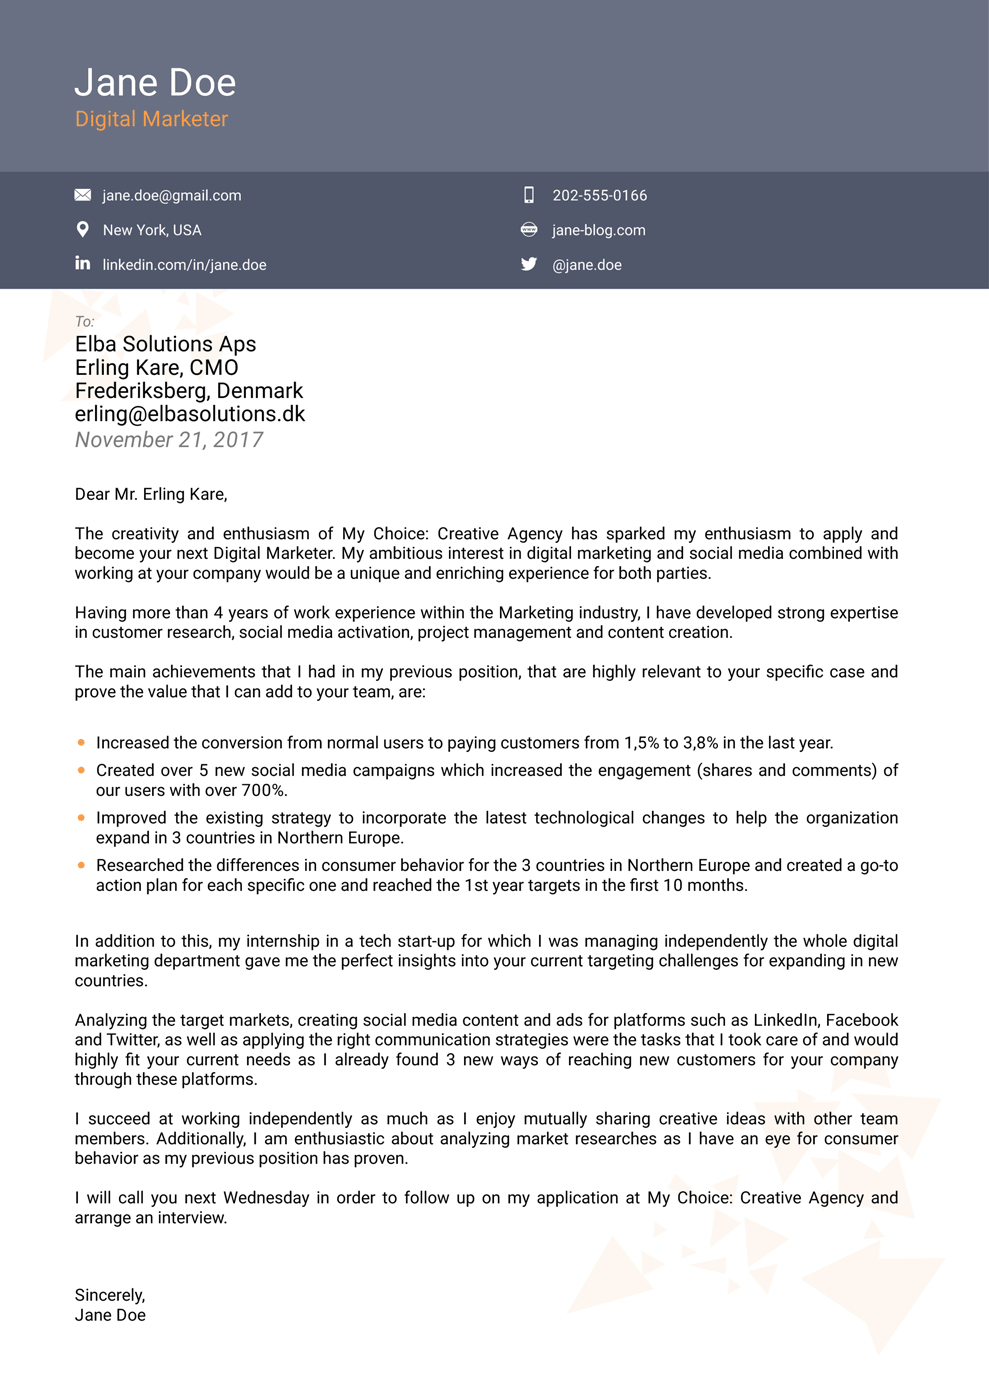 Cover Letter Template | Cover Letter Templates For 2019 Use Land Your Dream Job Now